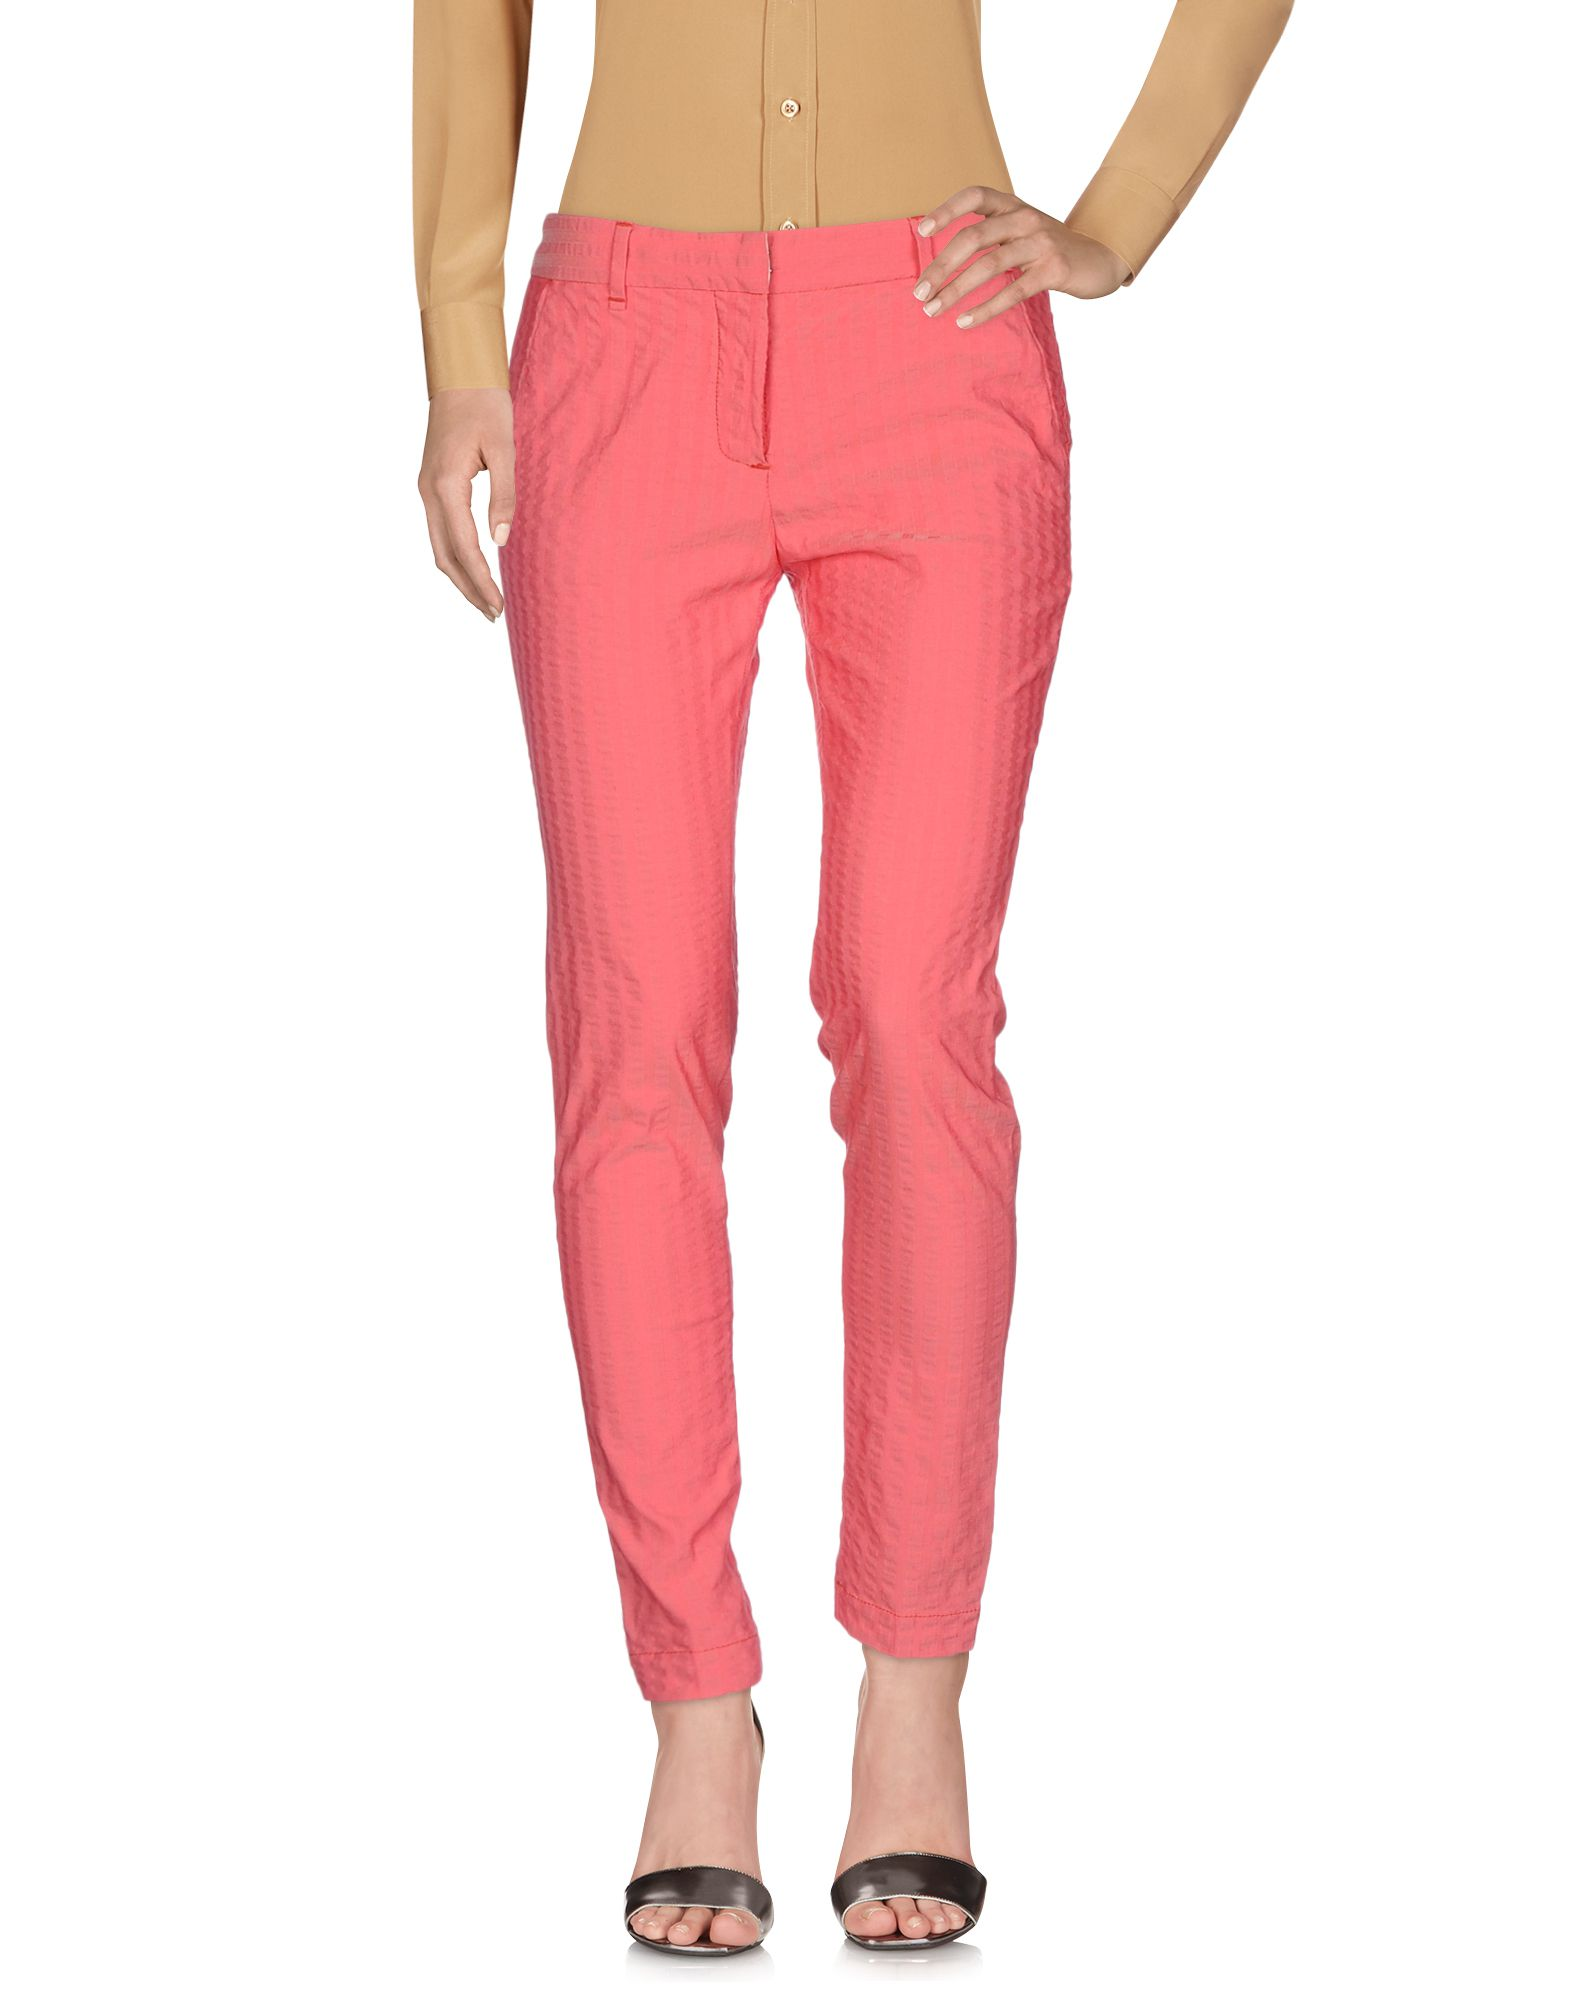 PERFECTION Casual Pants in Coral